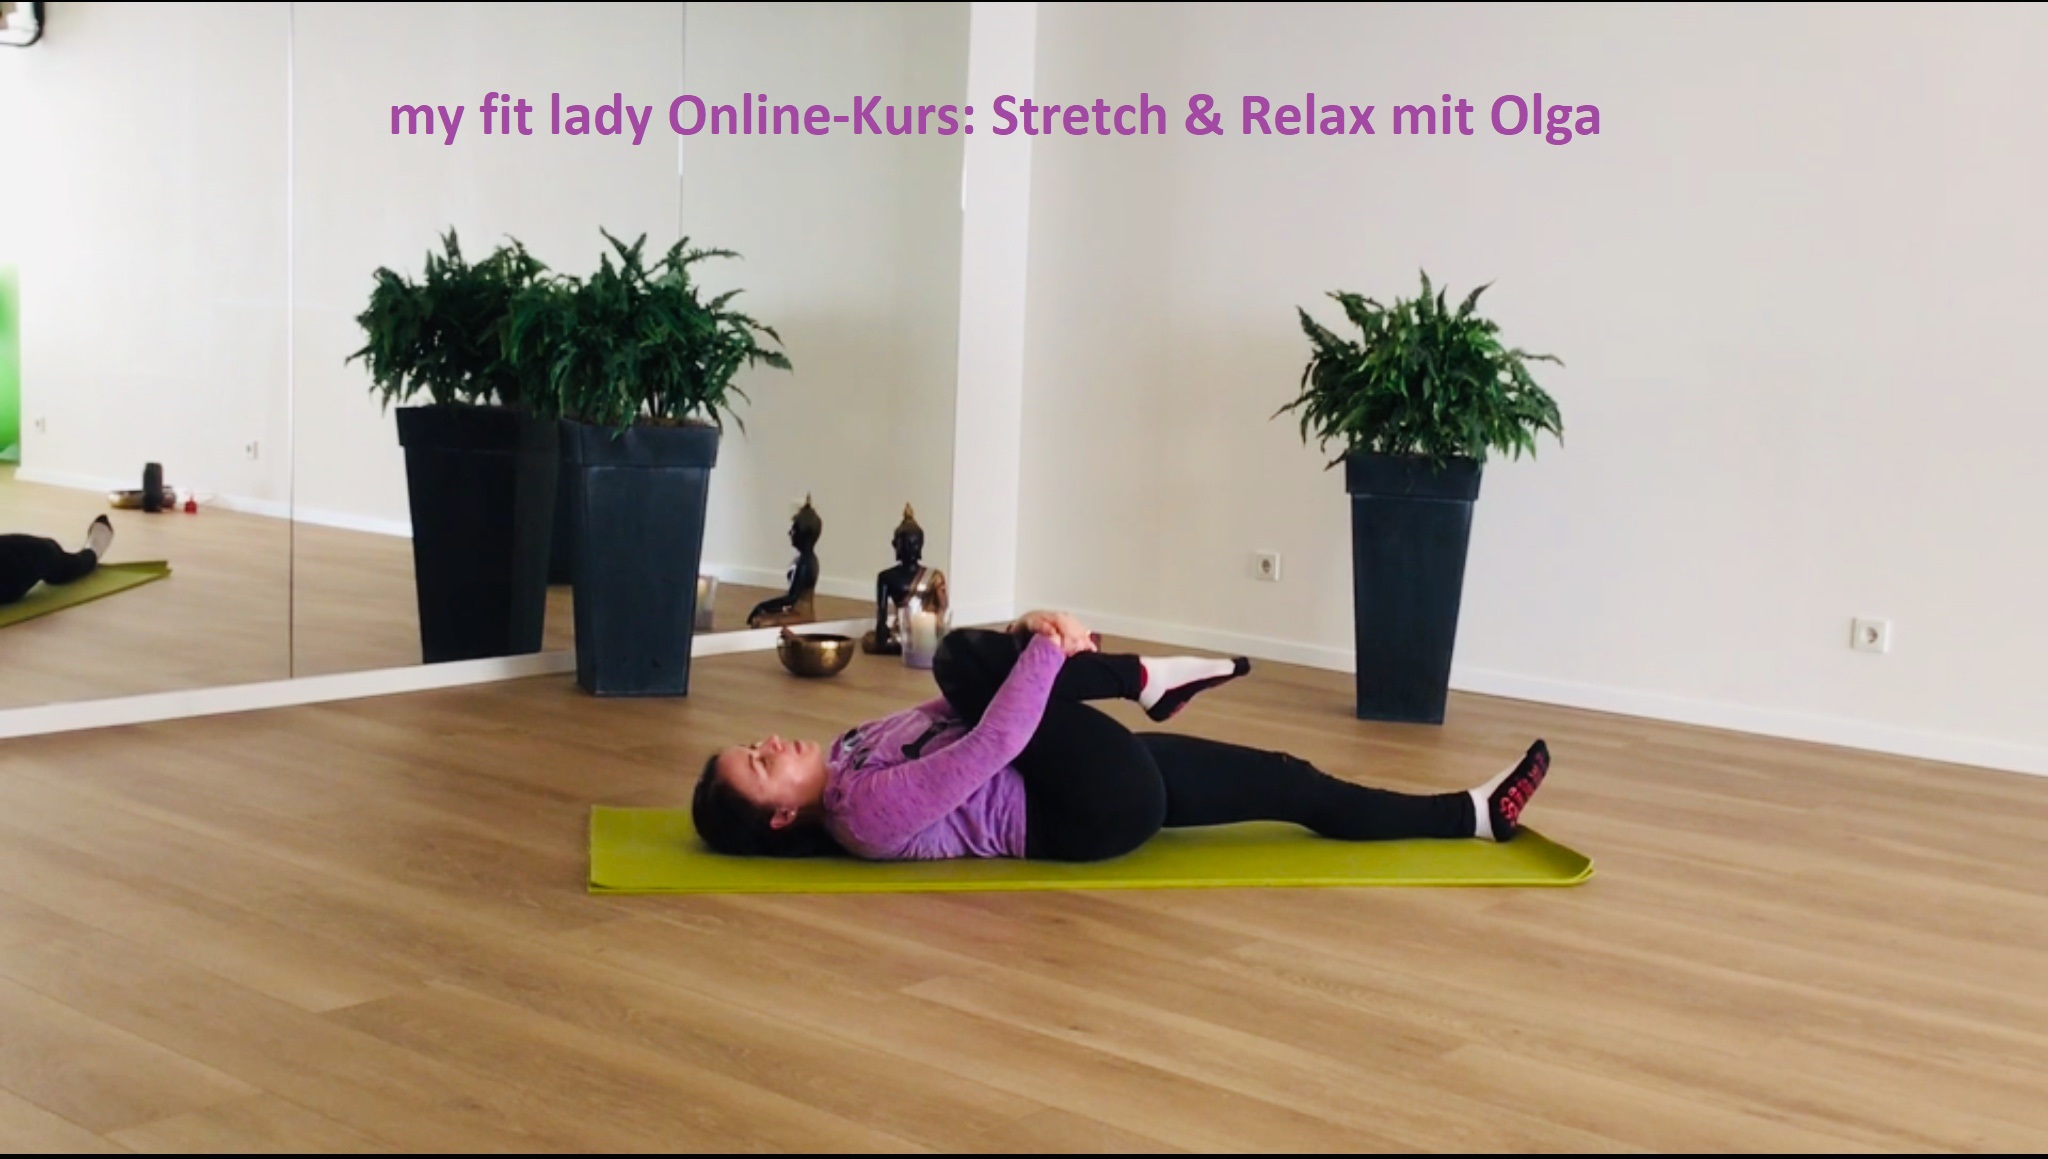 my fit lady, Stretch & Relax mit Olga